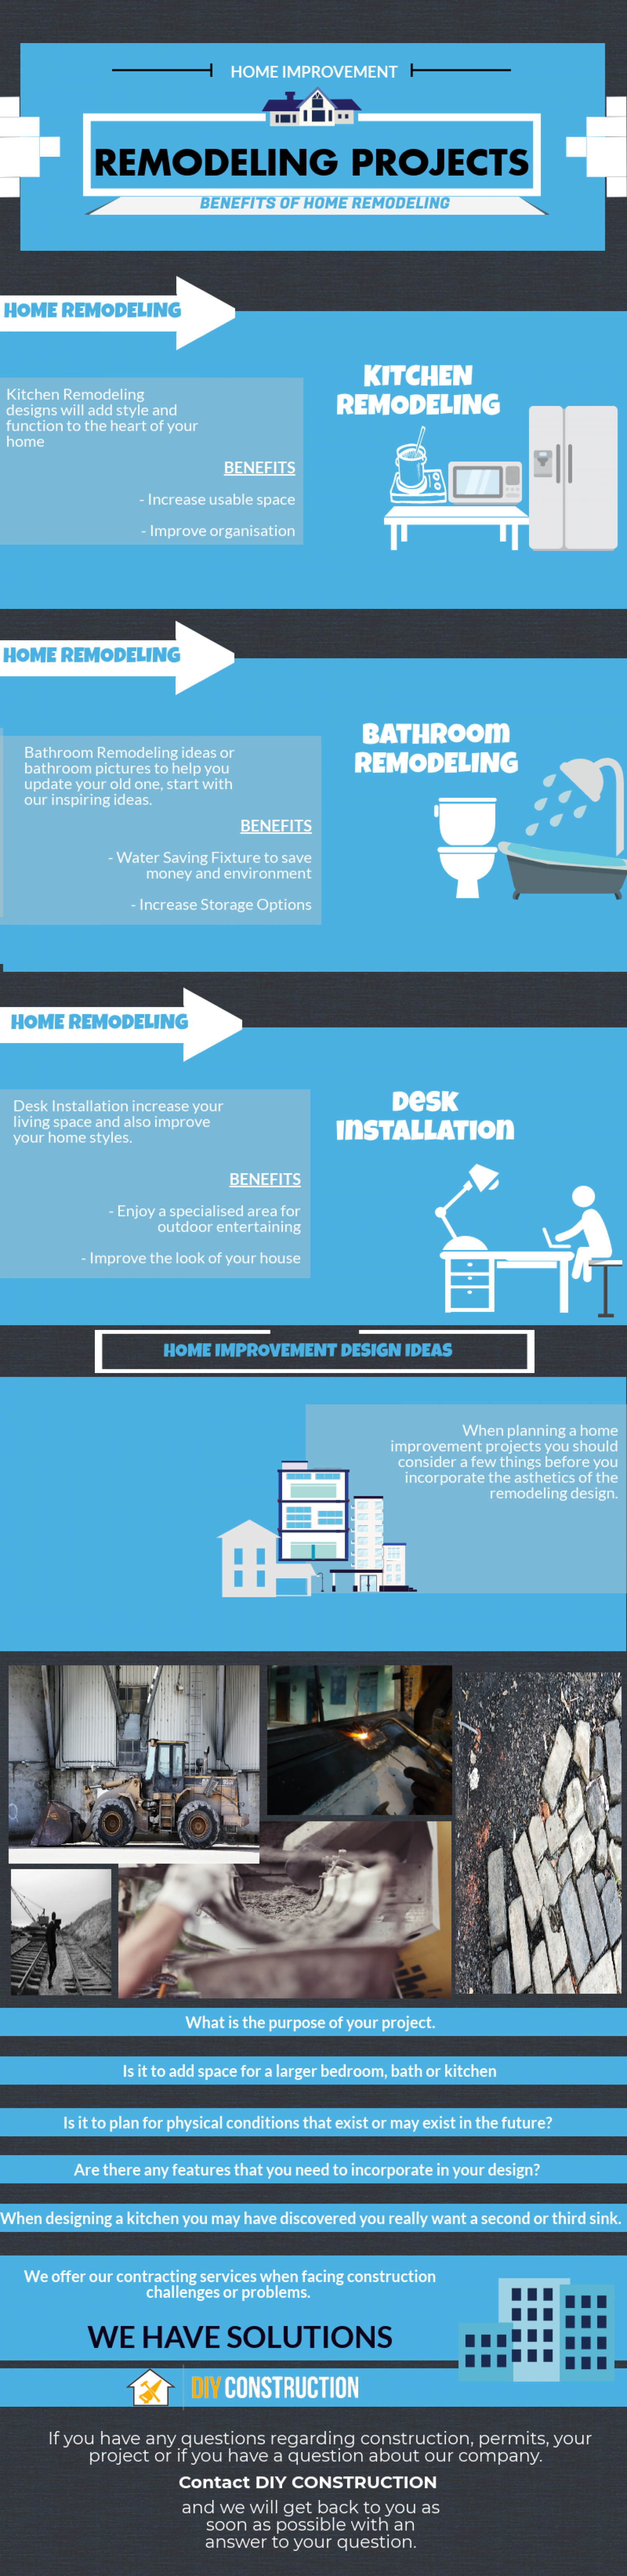 Home remodeling - Home improvement projects Infographic